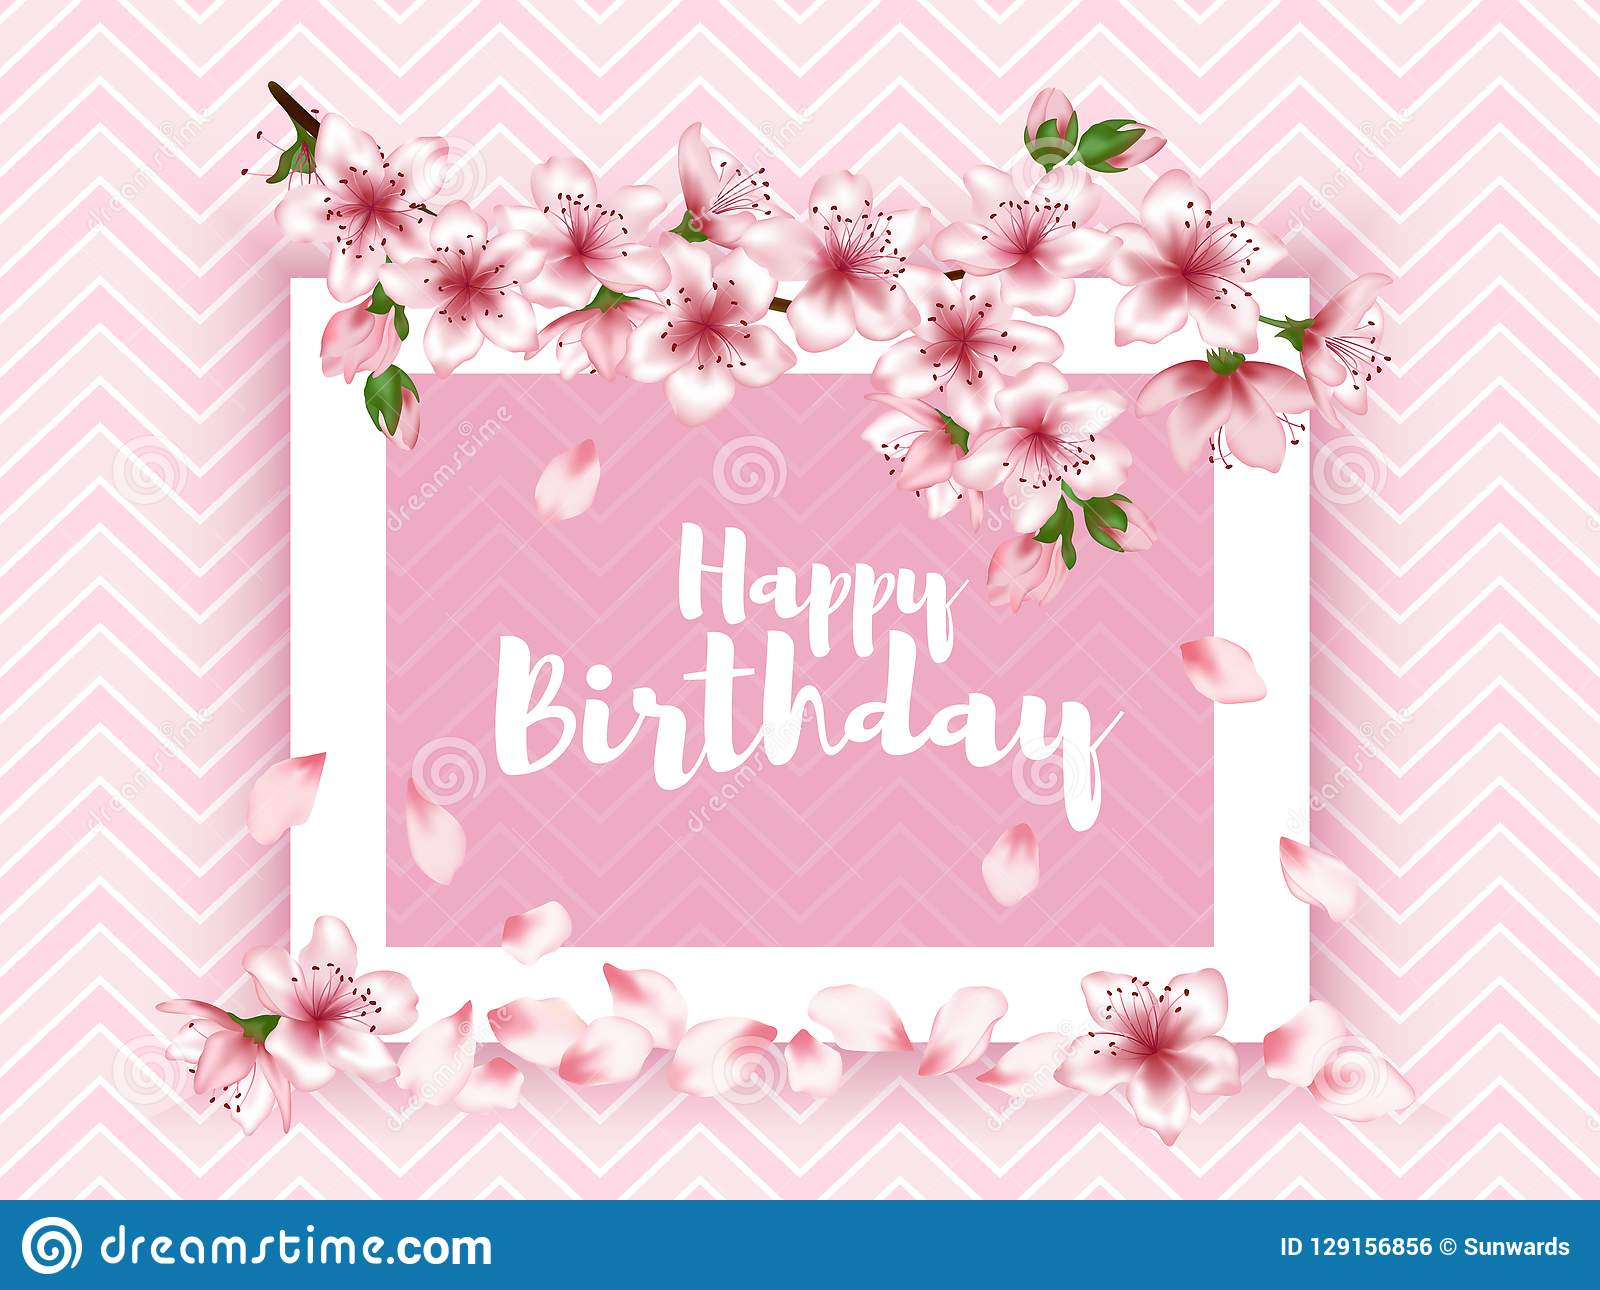 Happy Birthday Vector Card Japanese Cherry Blossom Pink Sakura Flowers Frame Elegant Greeting With Apple Branch Tree Bloom